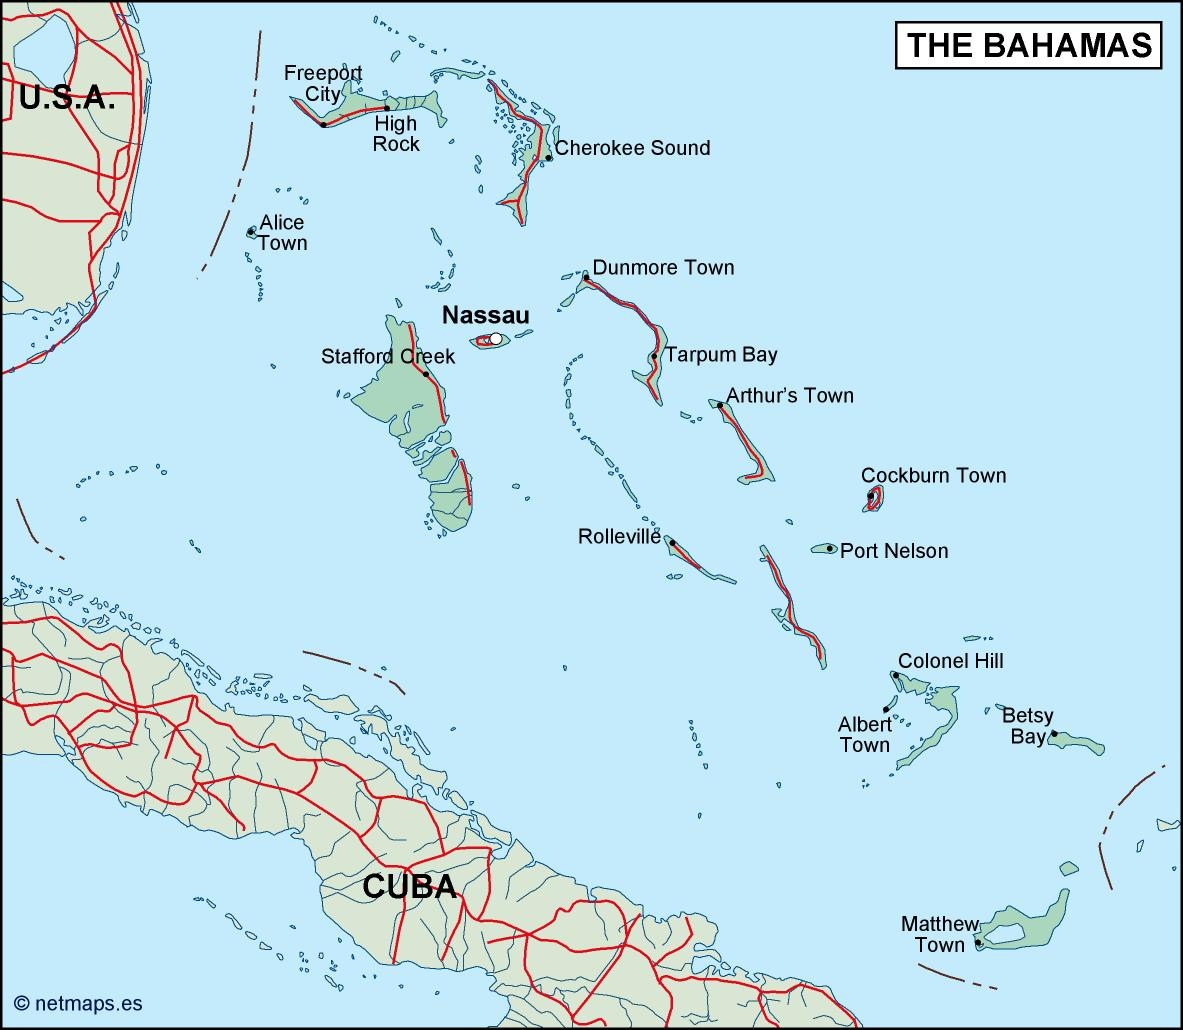 bahamas political map. bahamas political map  order and download bahamas political map